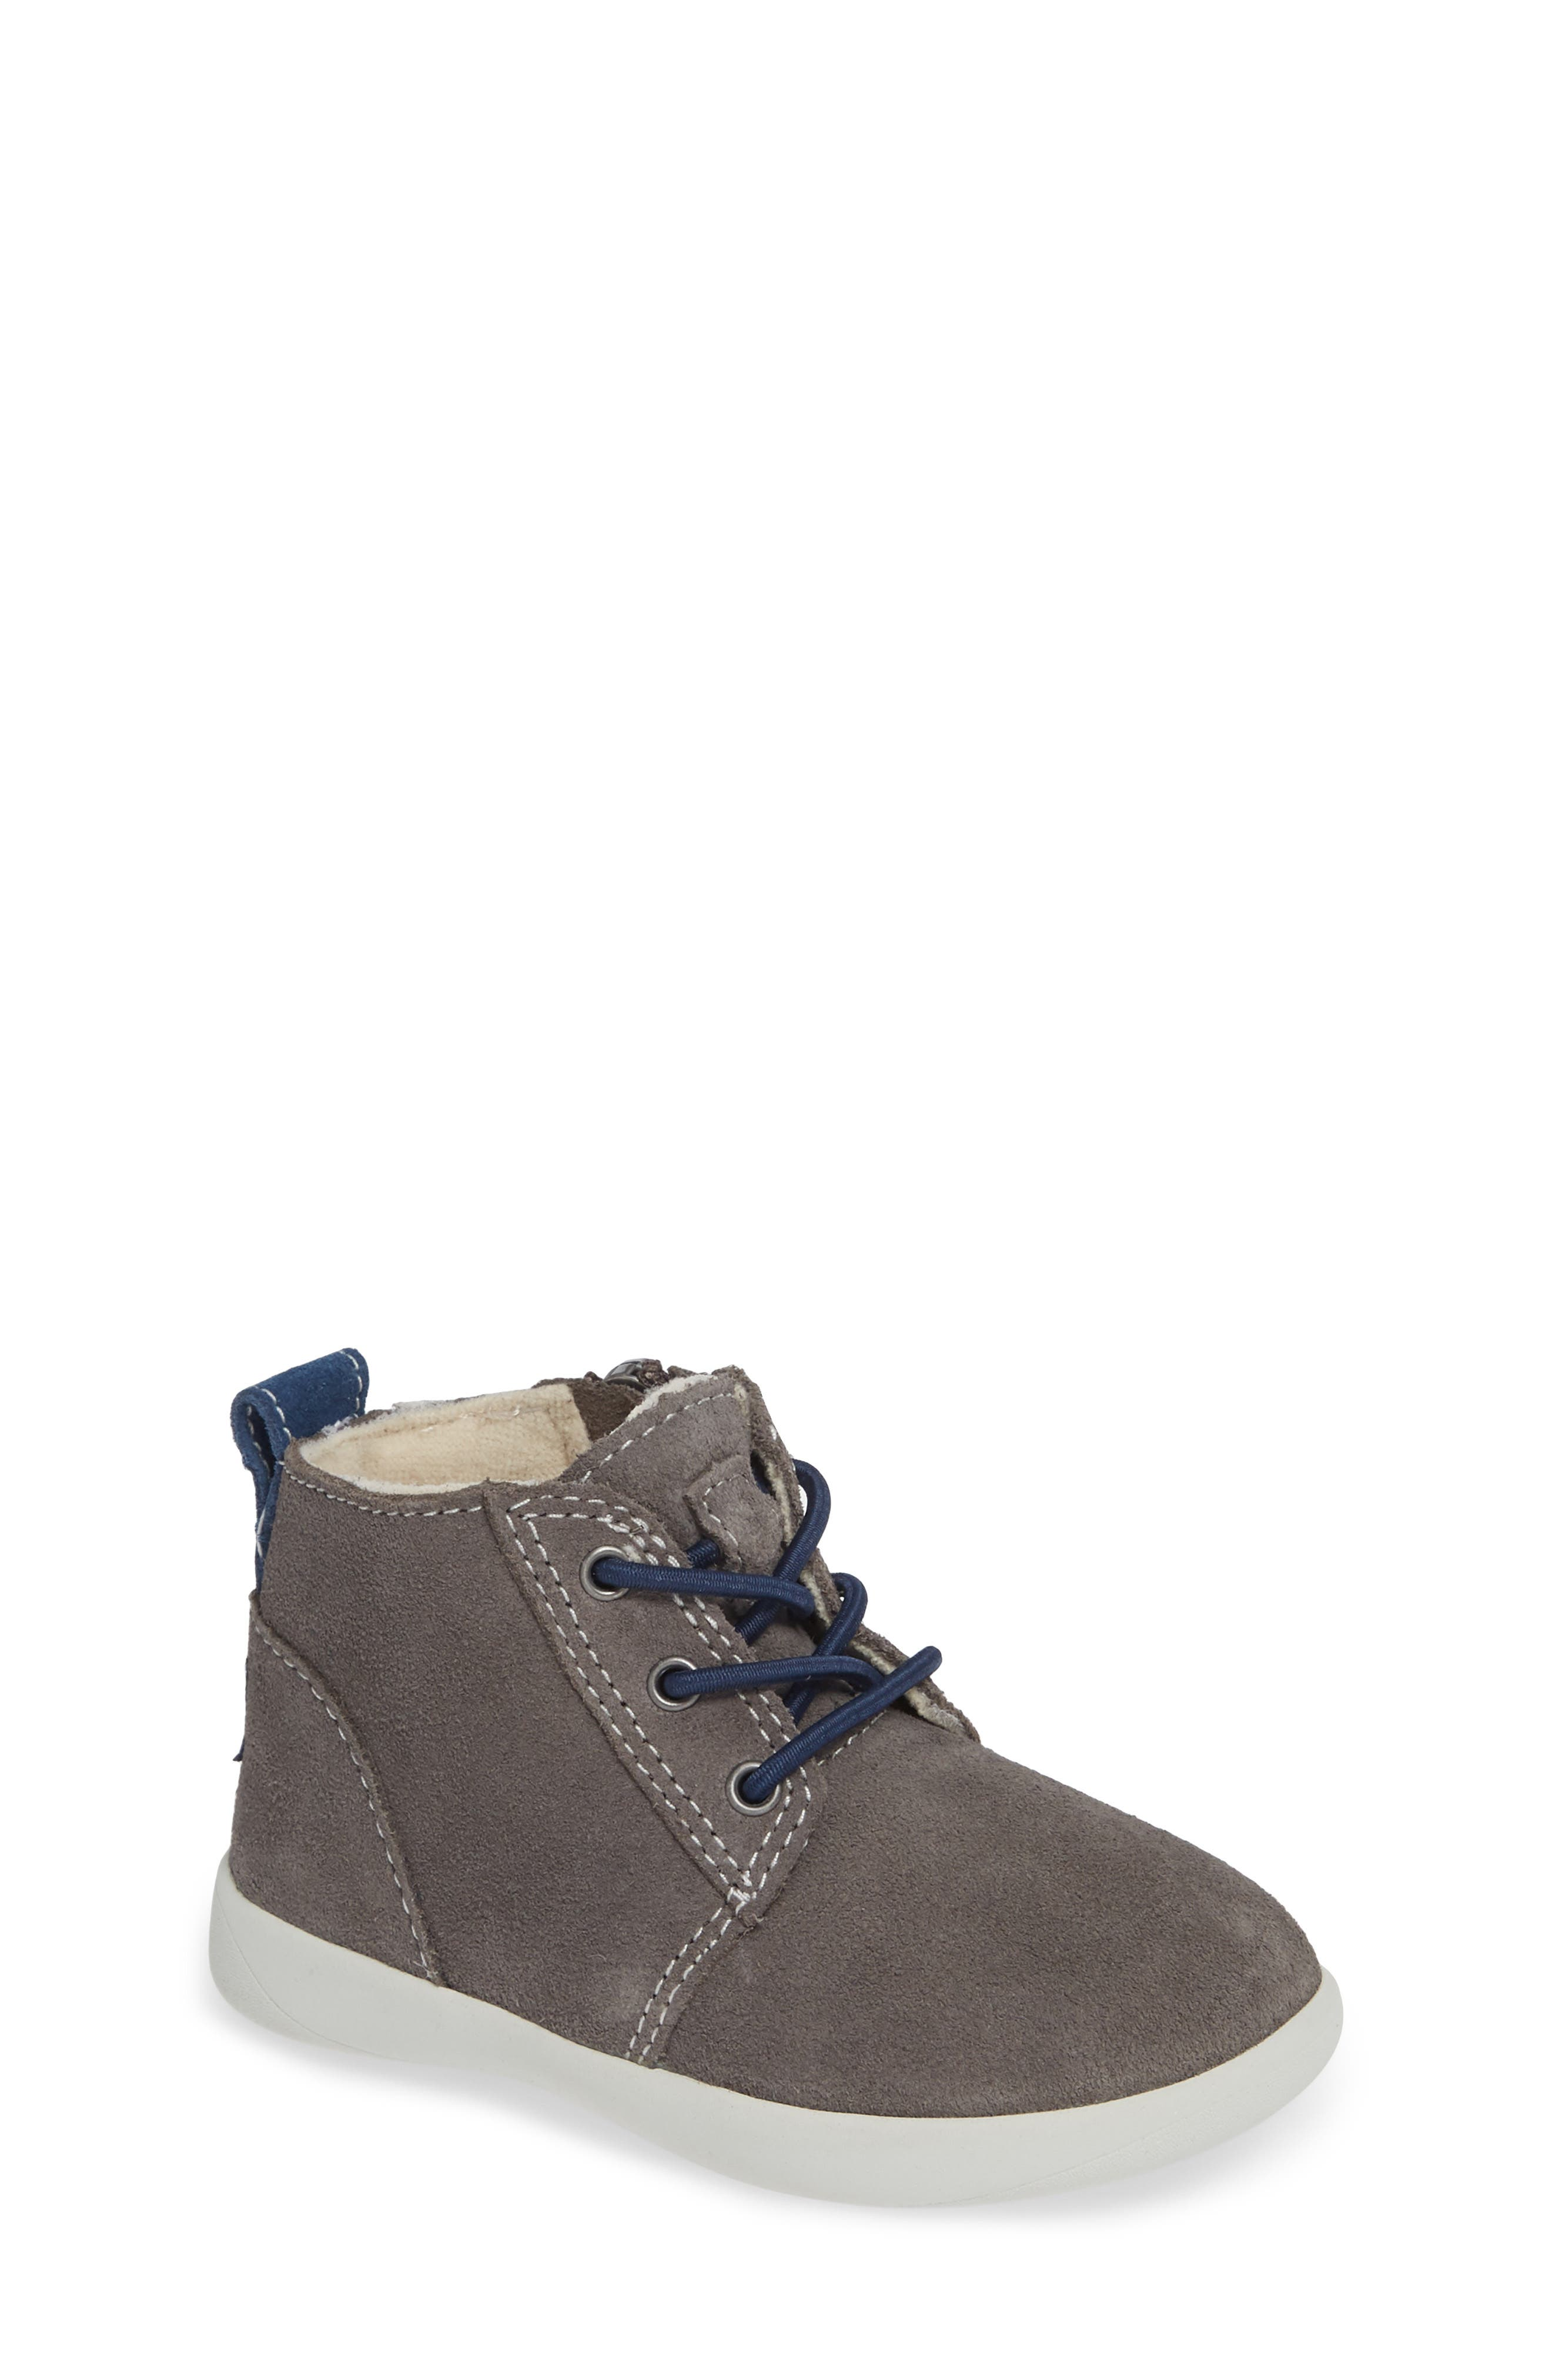 Kristjan Chukka Sneaker,                             Main thumbnail 1, color,                             CHARCOAL GREY